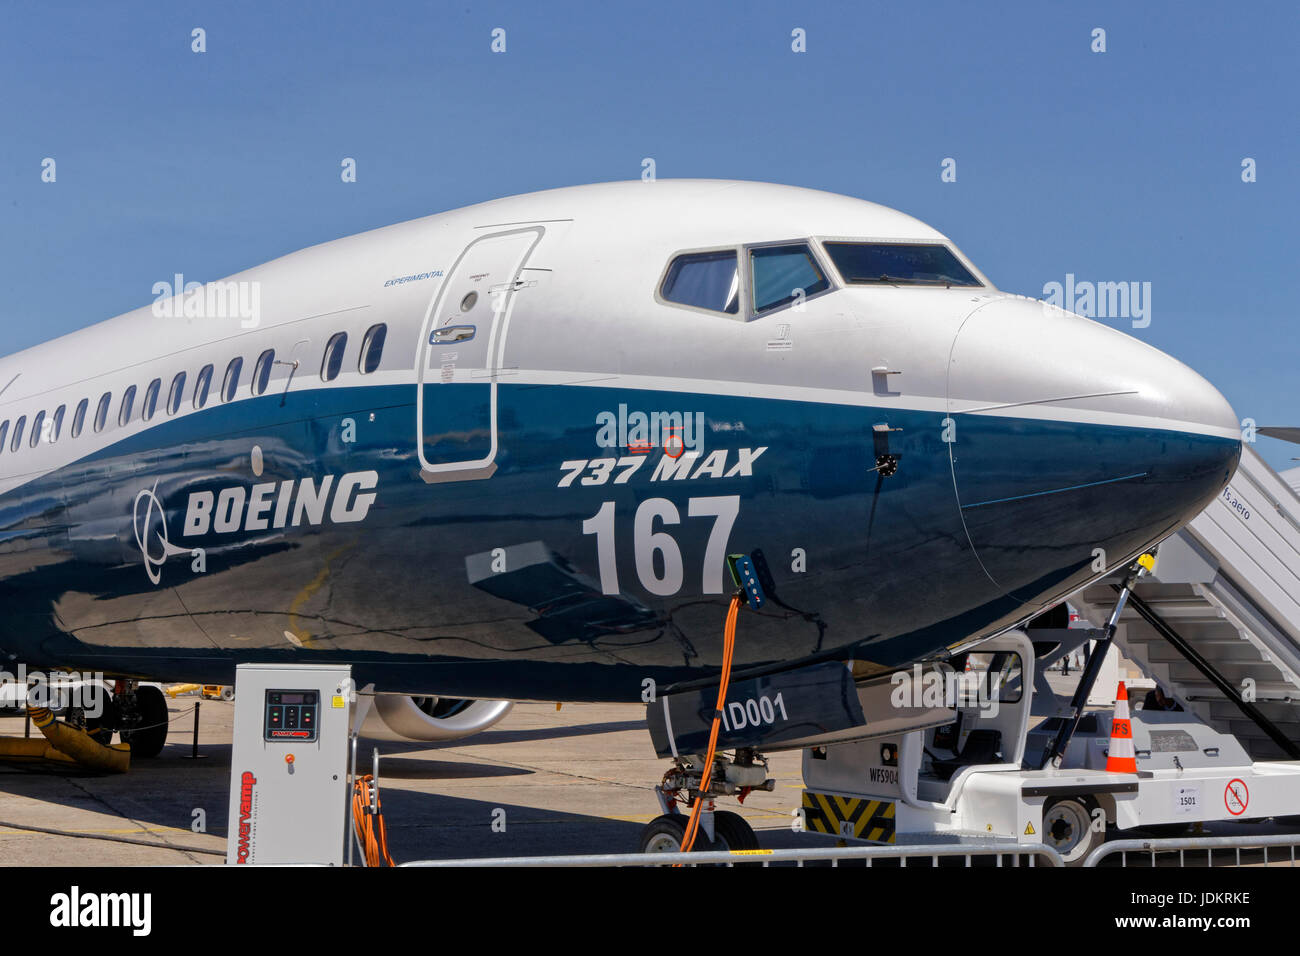 Boeing 737 Max 10 Stock Photos & Boeing 737 Max 10 Stock